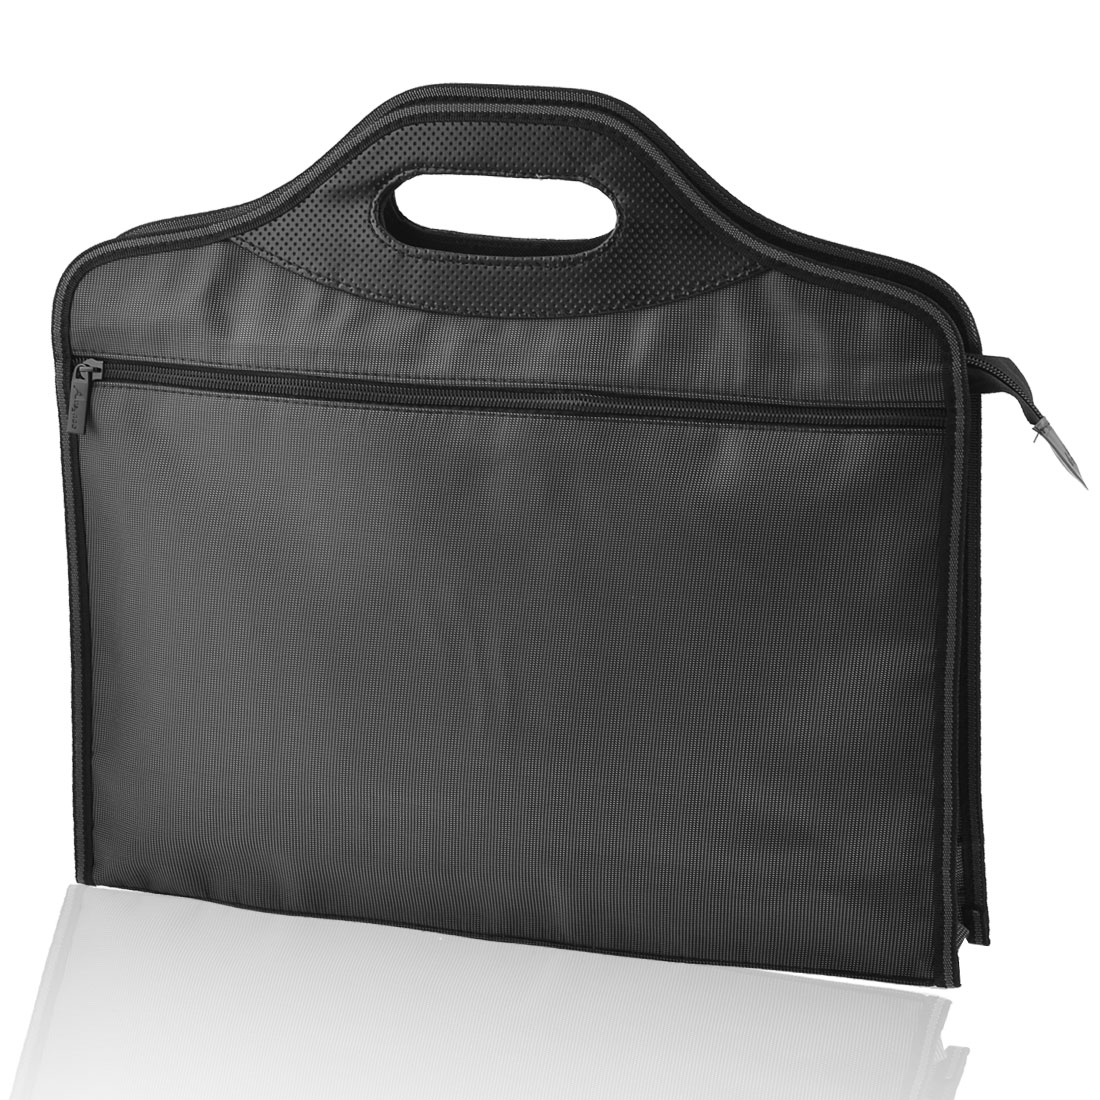 40cm x 35cm Rectangle 2 Sections Zip Up Closure Nylon File Bills Bag Black